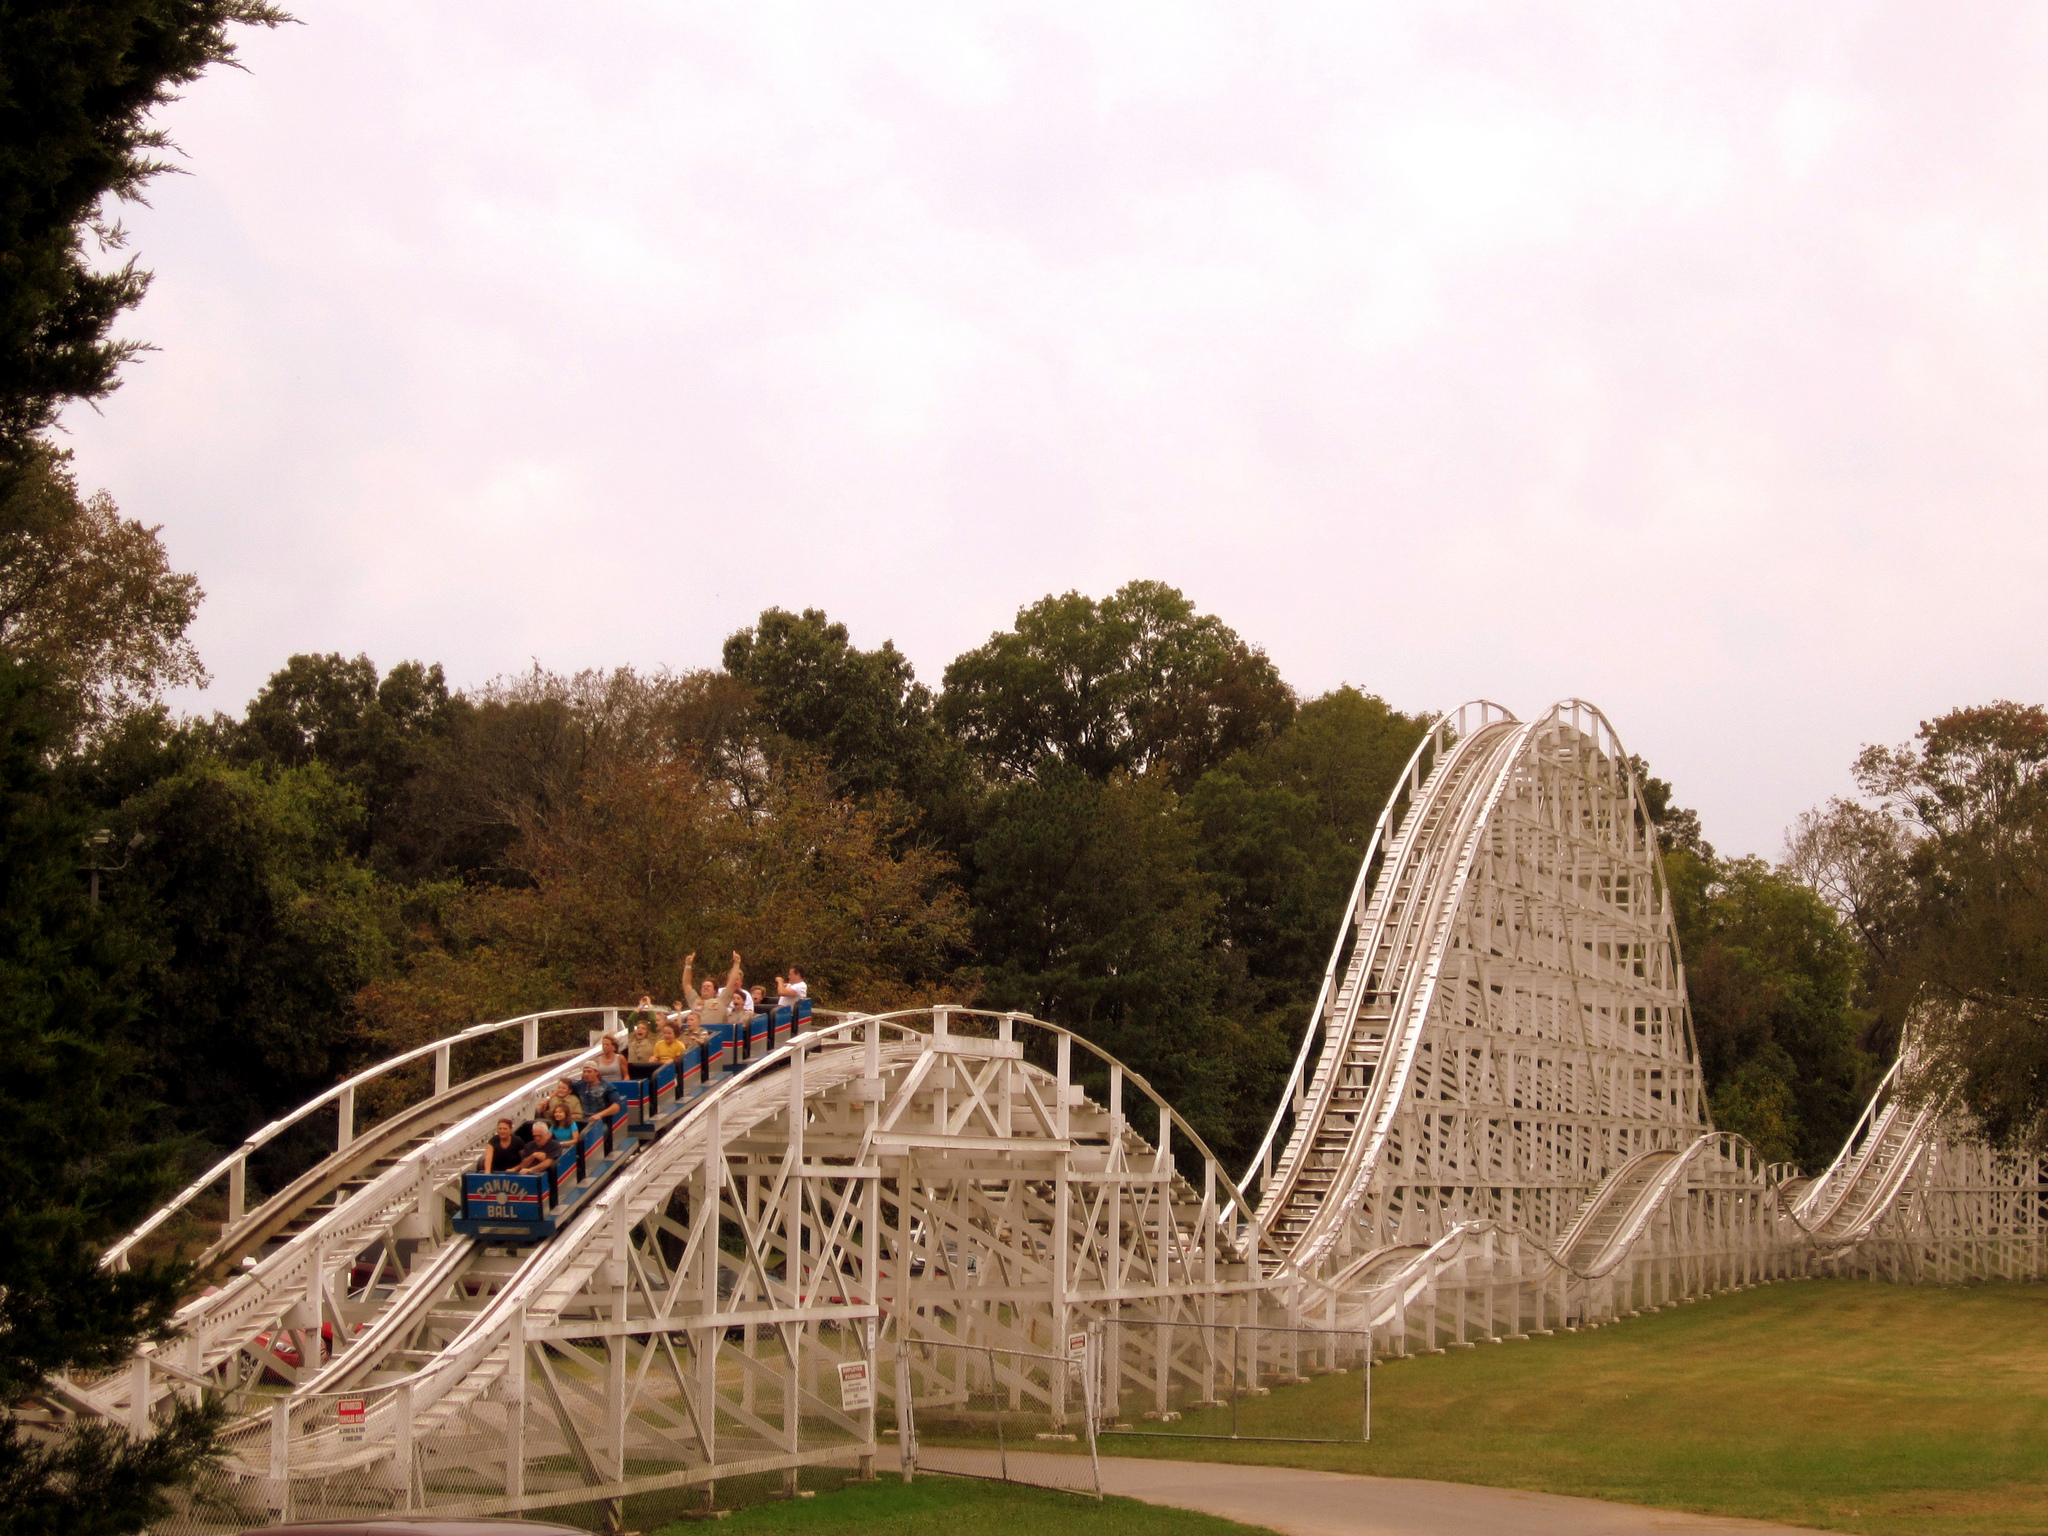 Everyone Should Go To These 3 Epic Tennessee Amusement Parks